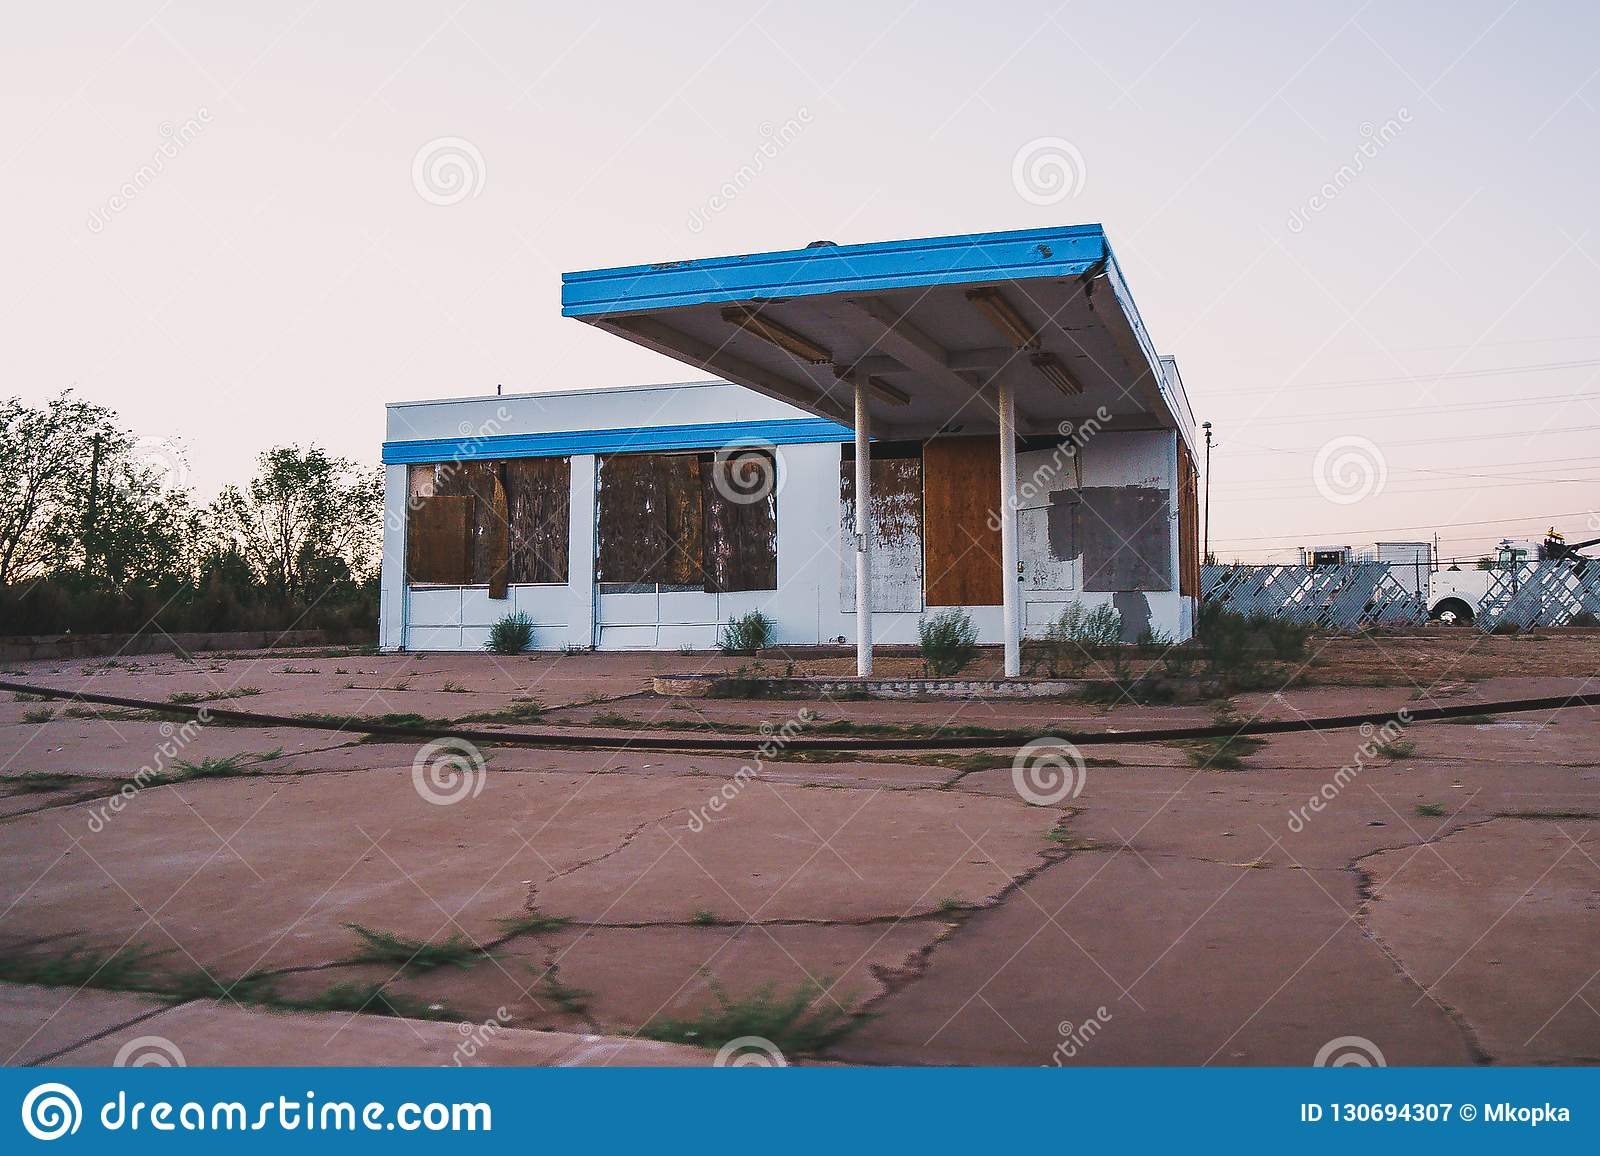 Old Abandoned Building Likely A Gas Station In Holbrook Arizona Stock Image Image Of Country Likely 130694307